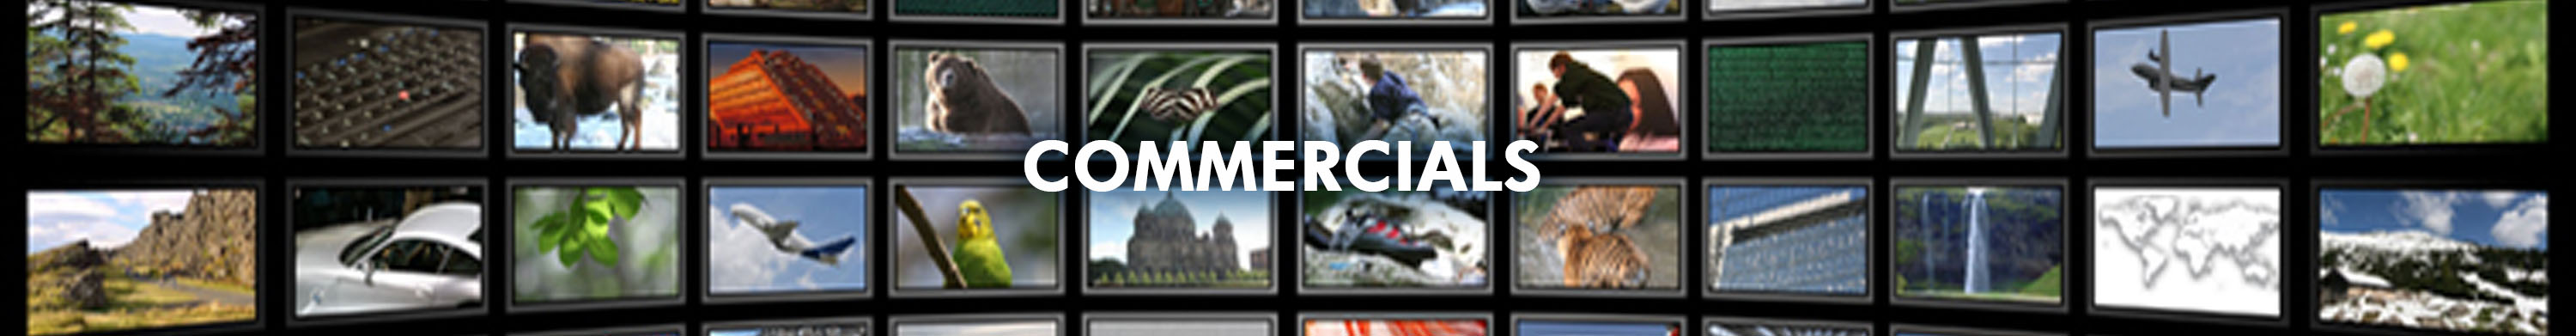 Entertainment Banner Commercials